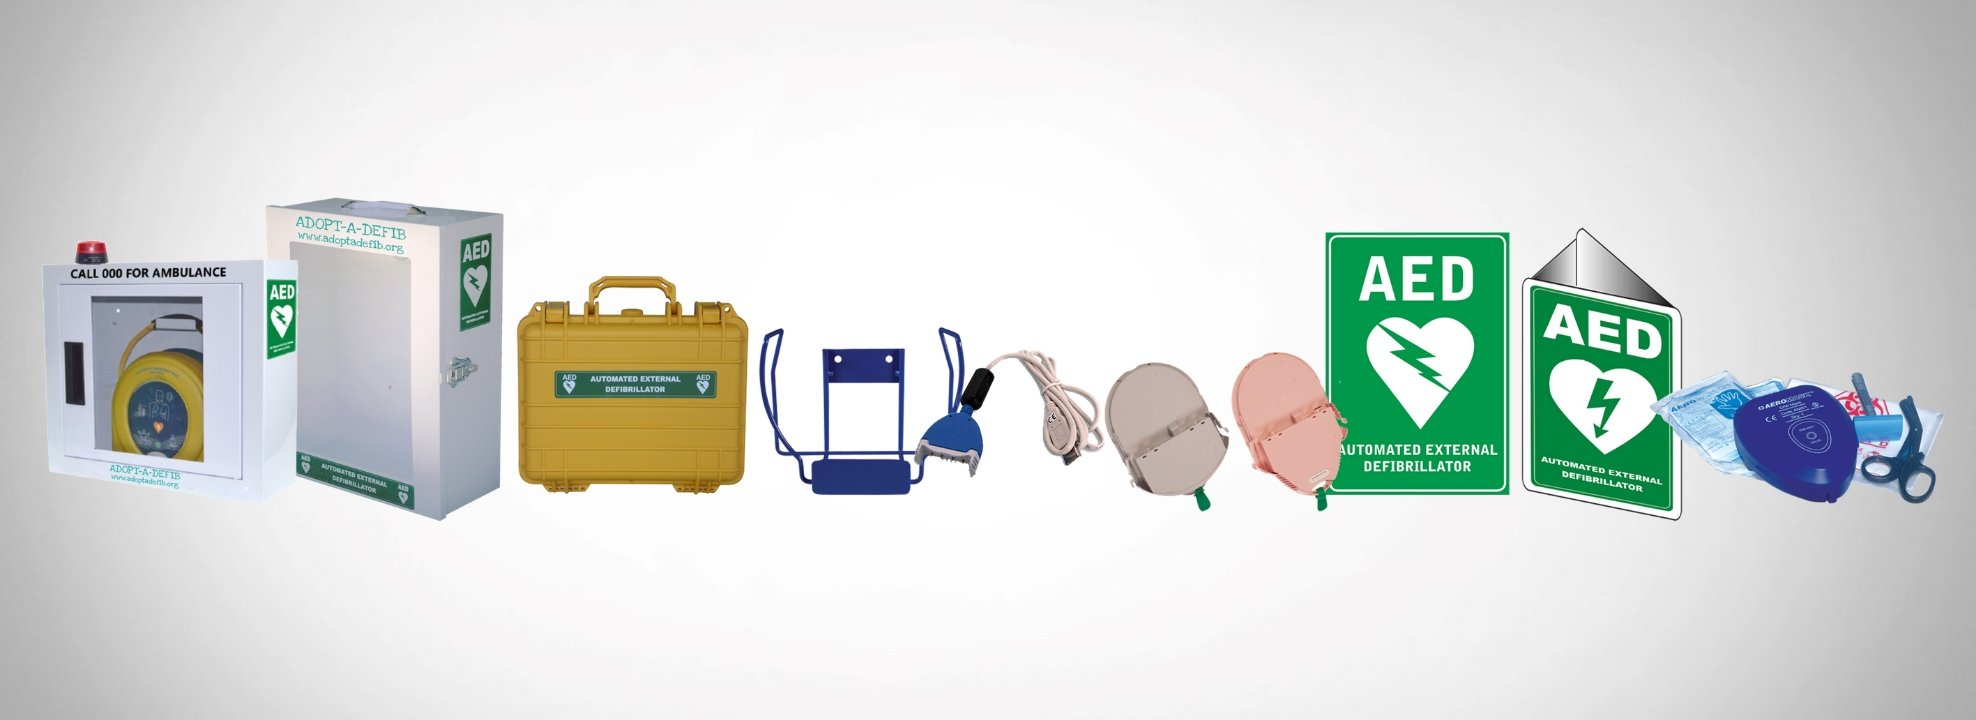 Defibrillator Accessories Affordable Aed Packages Not For